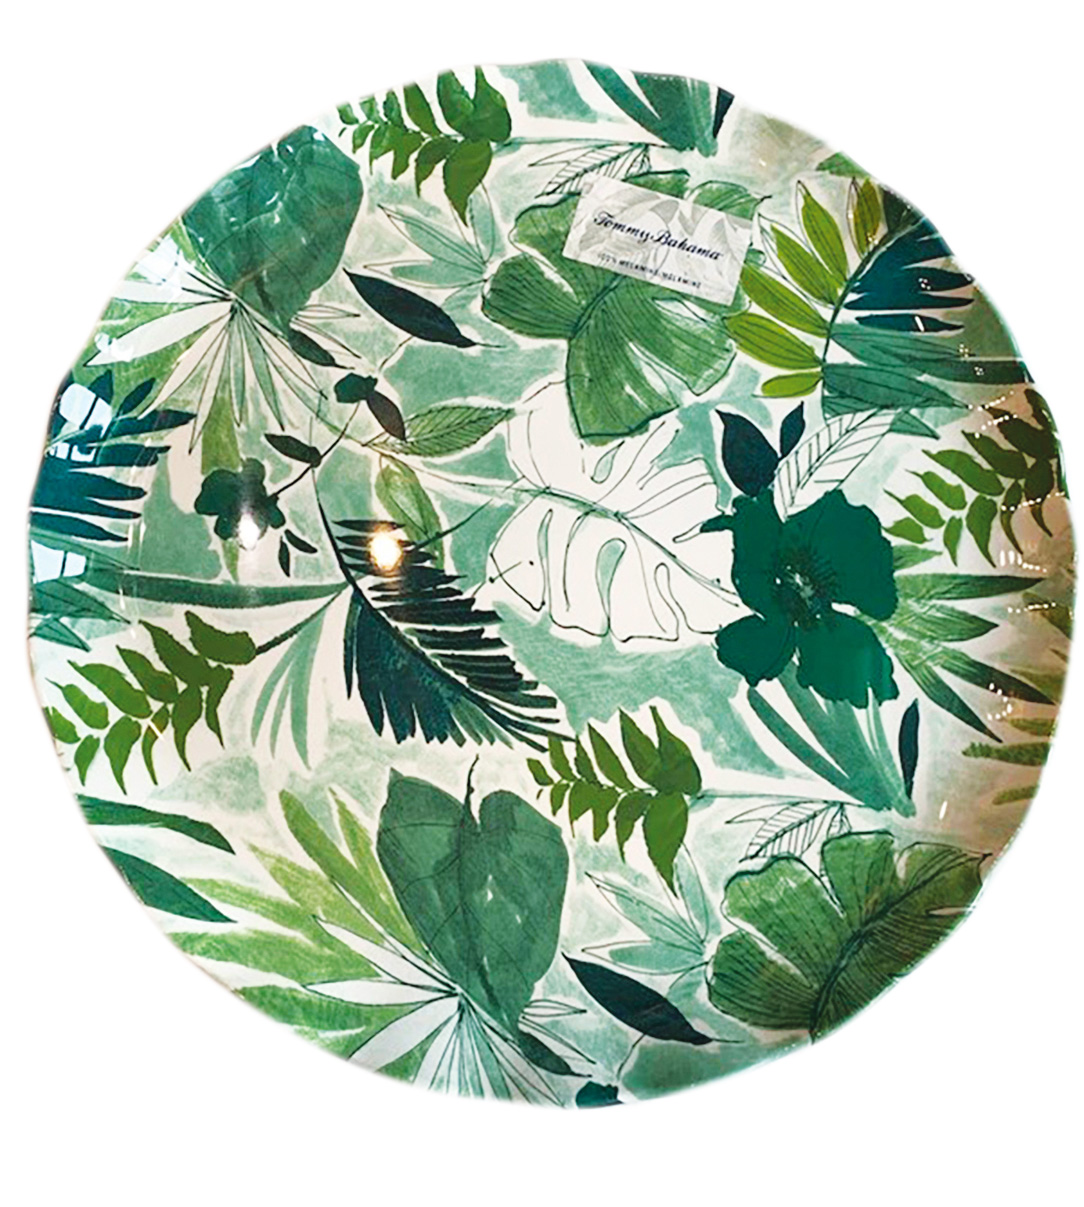 Melamine plate from Iggy's Crafts